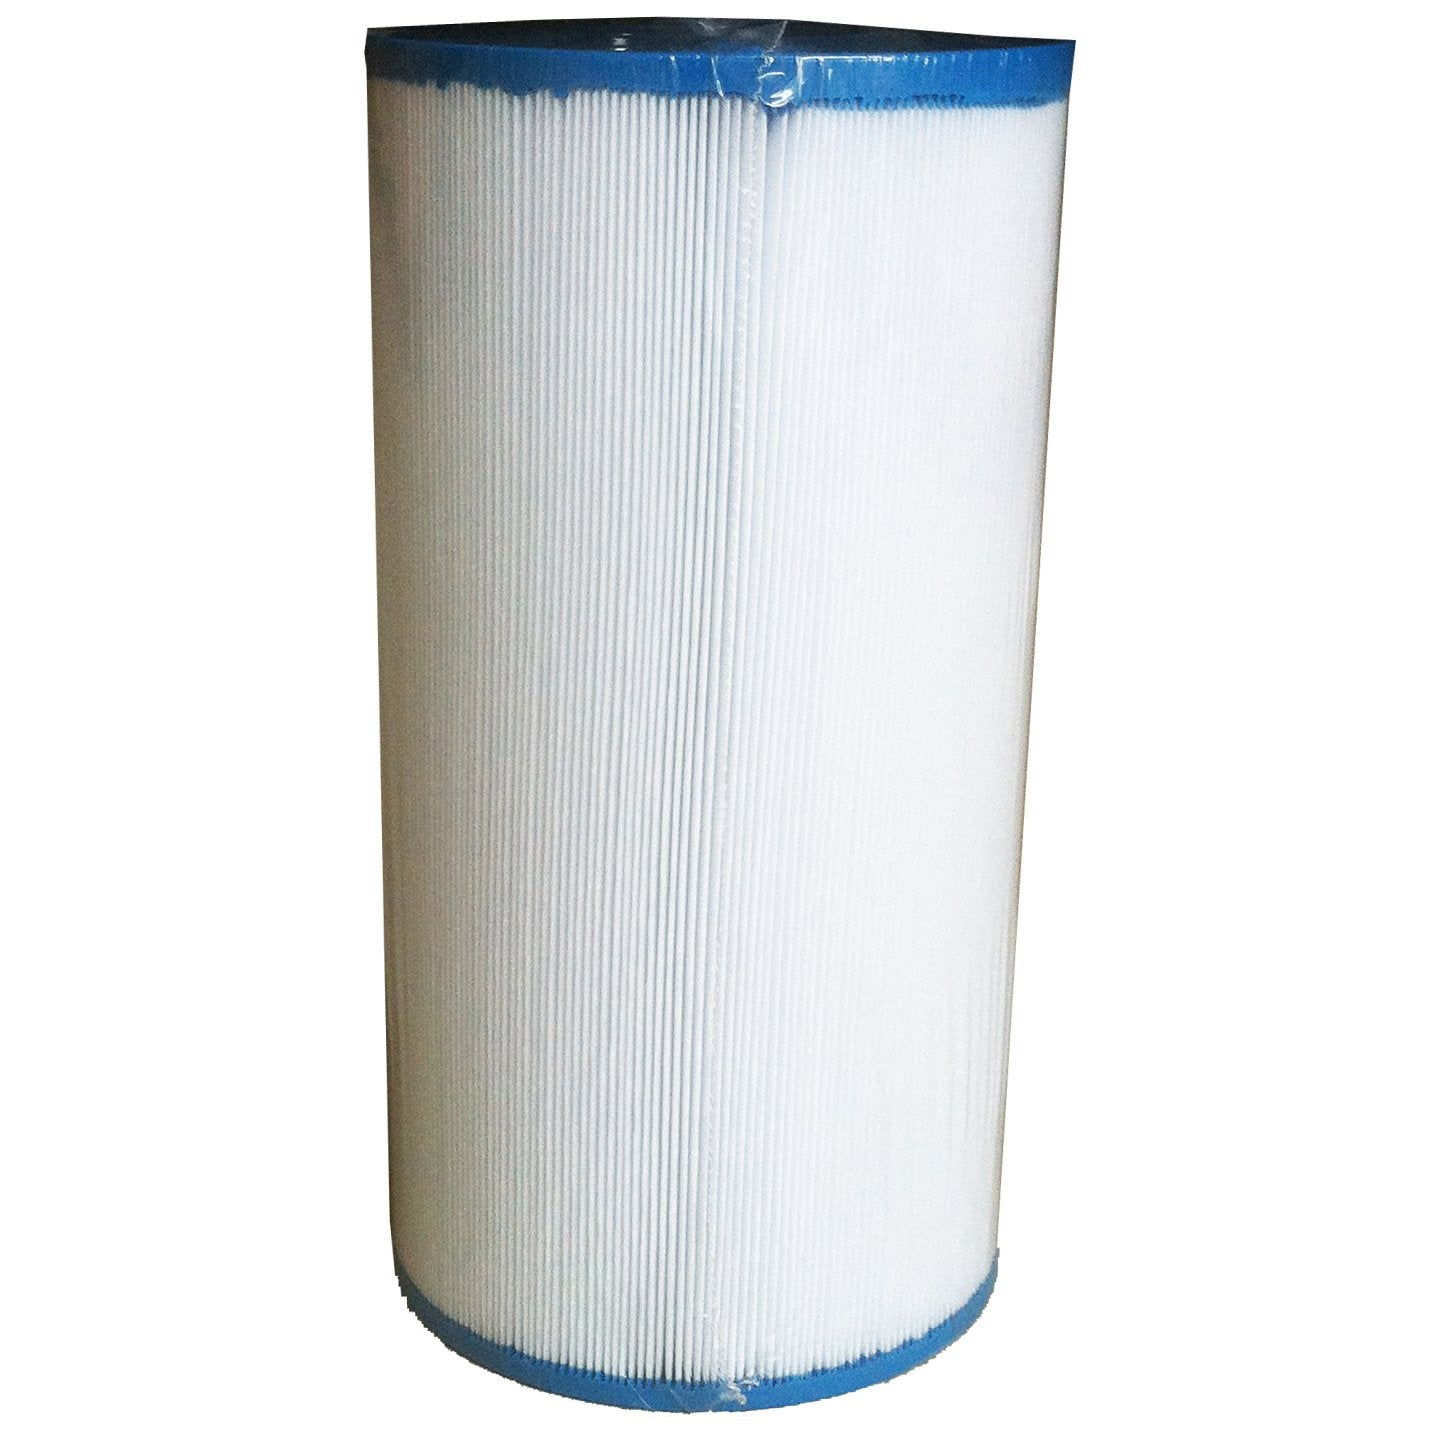 Replacement for 817-0014 R173584, Leisure Bay, Dynasty Spas, Waterway, Pleatco PLBS60, Filbur FC-2970, Unicel C-5345 Filter Cartridge